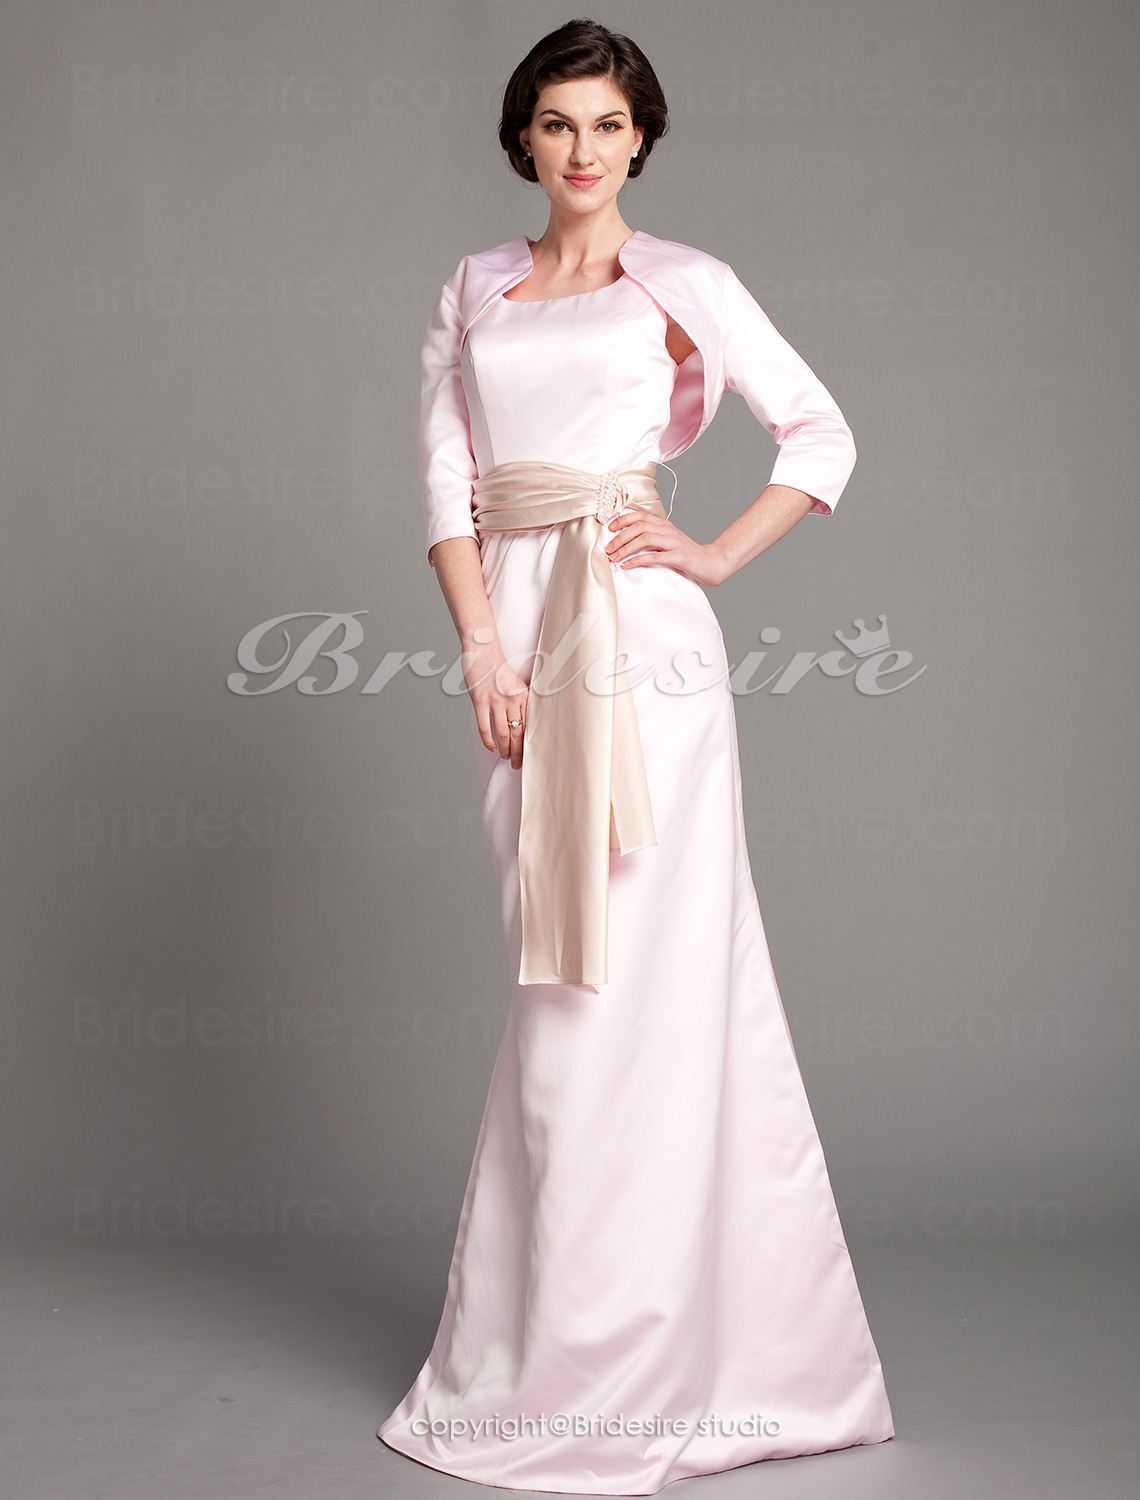 Trumpet/ Mermaid Satin Floor-length Square Mother of the Bride Dress With A Wrap